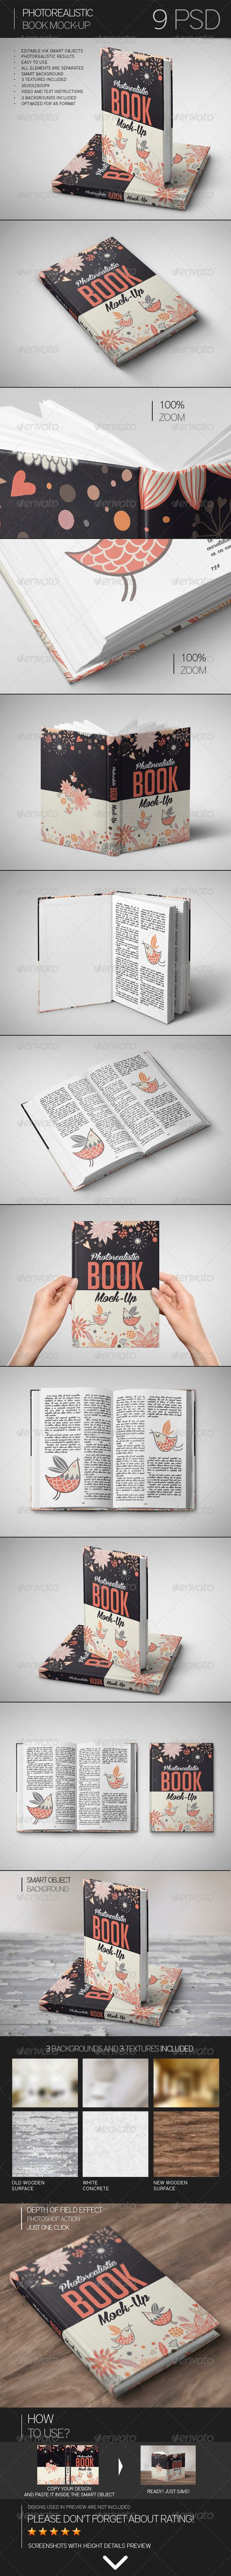 Photorealistic Book Mock-Up #bookmockup Download: http://graphicriver.net/item/photorealistic-book-mockup/8332398?ref=ksioks